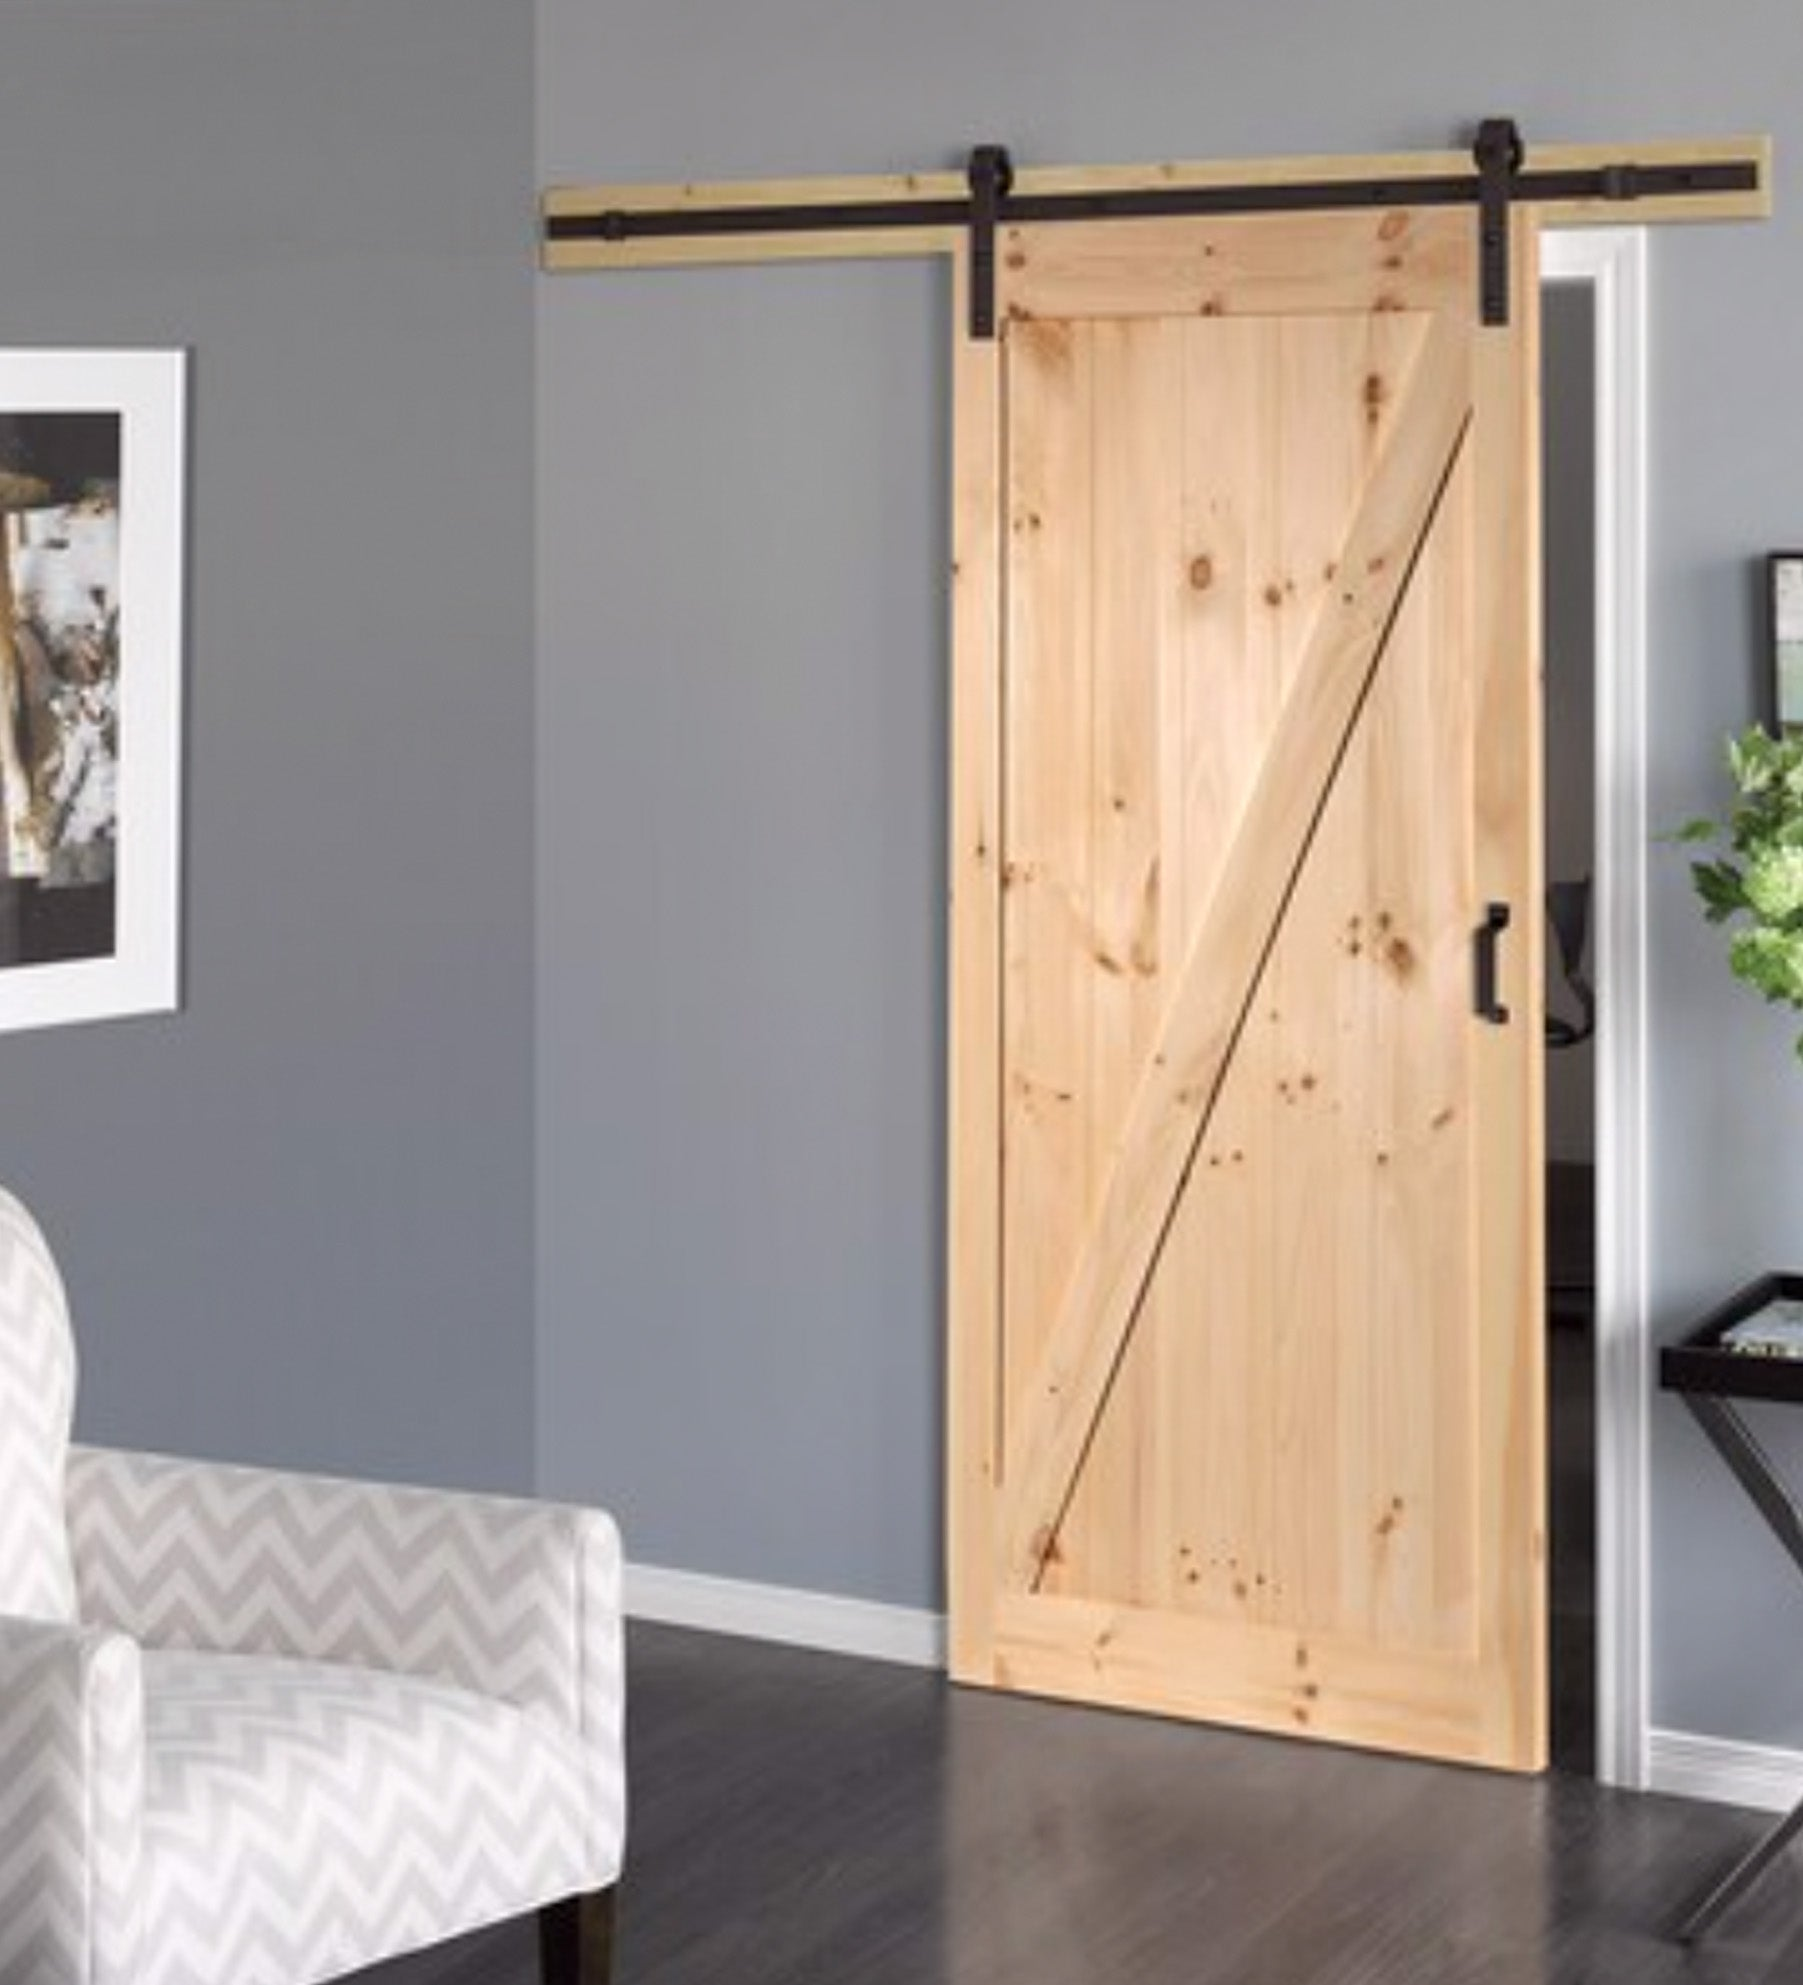 INSTALLED ReliaBilt Pine Unfinished Z-Frame Wood Pine Barn Door Hardware Included